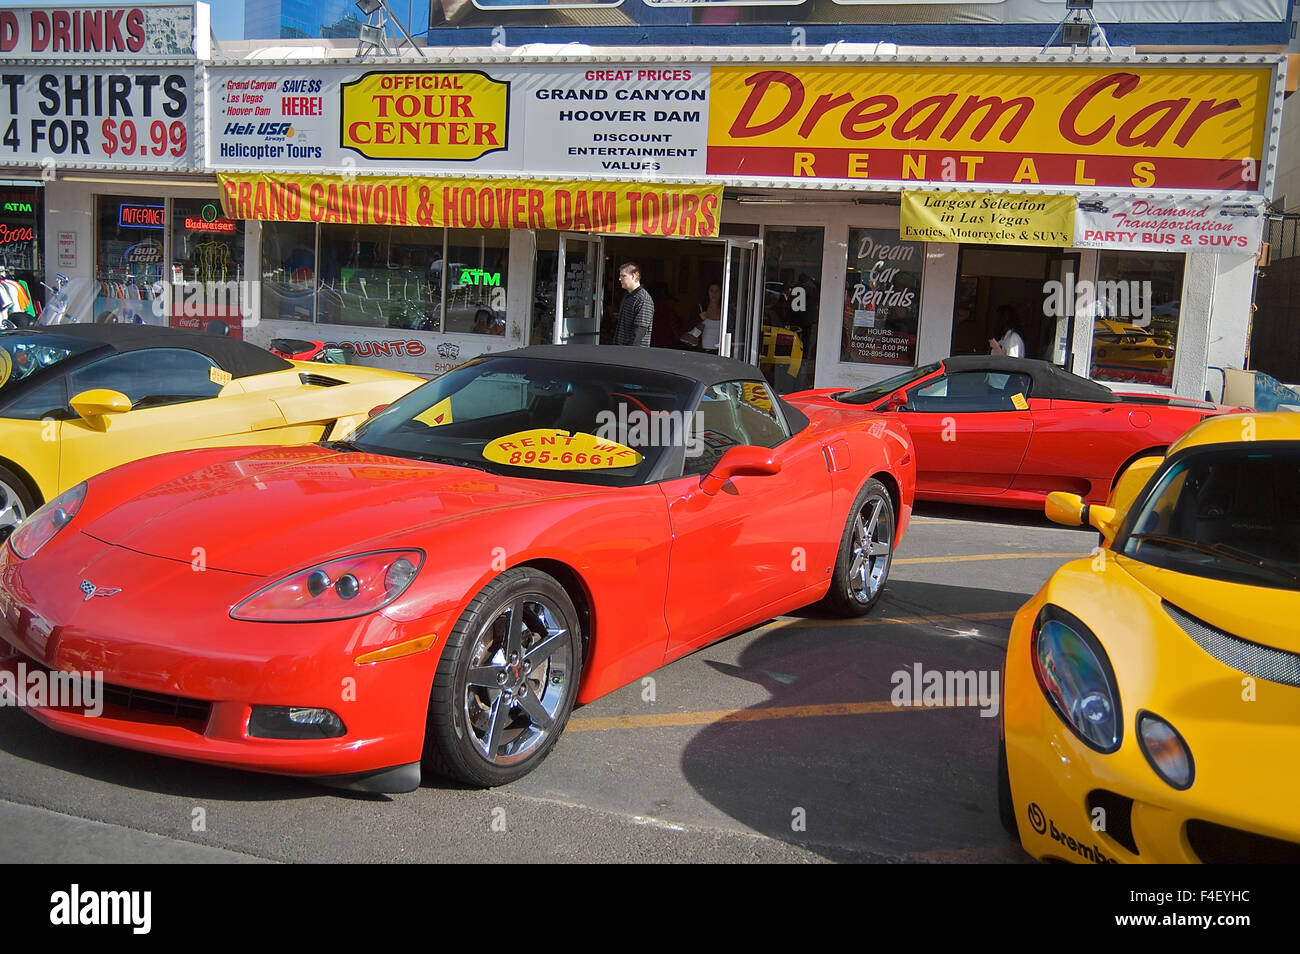 Sports Cars For Rent On The Las Vegas Strip Nevada United States